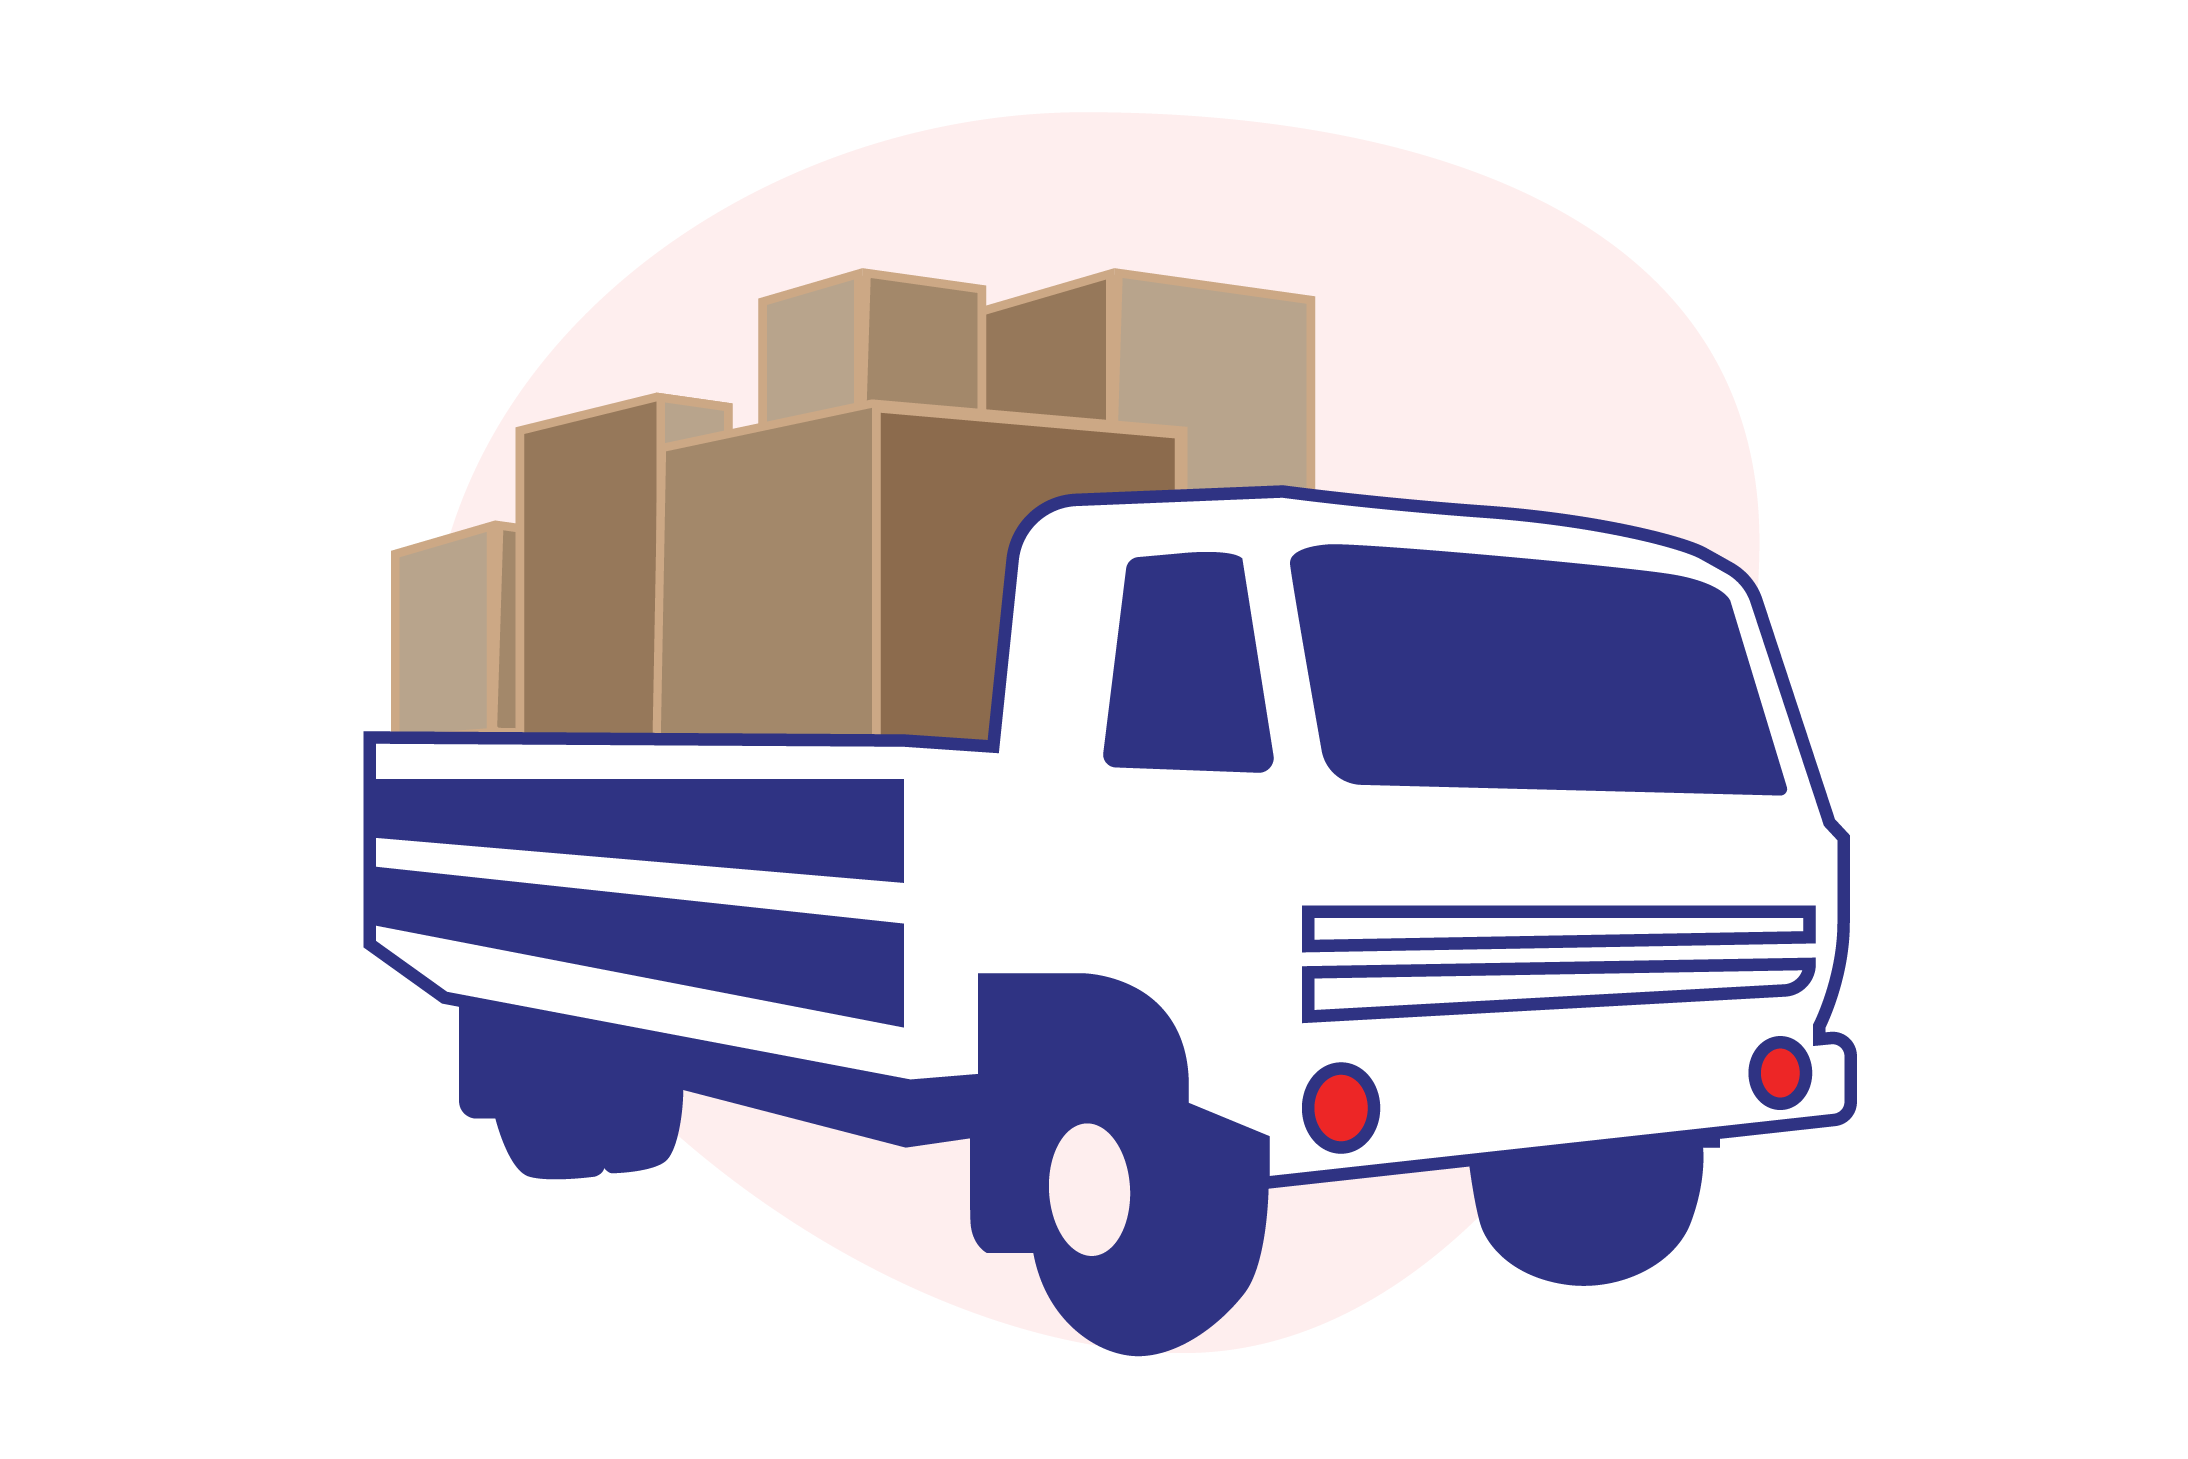 What is your delivery policy? - We deliver throughout the Kawartha Lakes area and beyond. A basic delivery charge applies to all orders. Additional mileage may apply. Delivery includes removal and disposal of your old appliance.